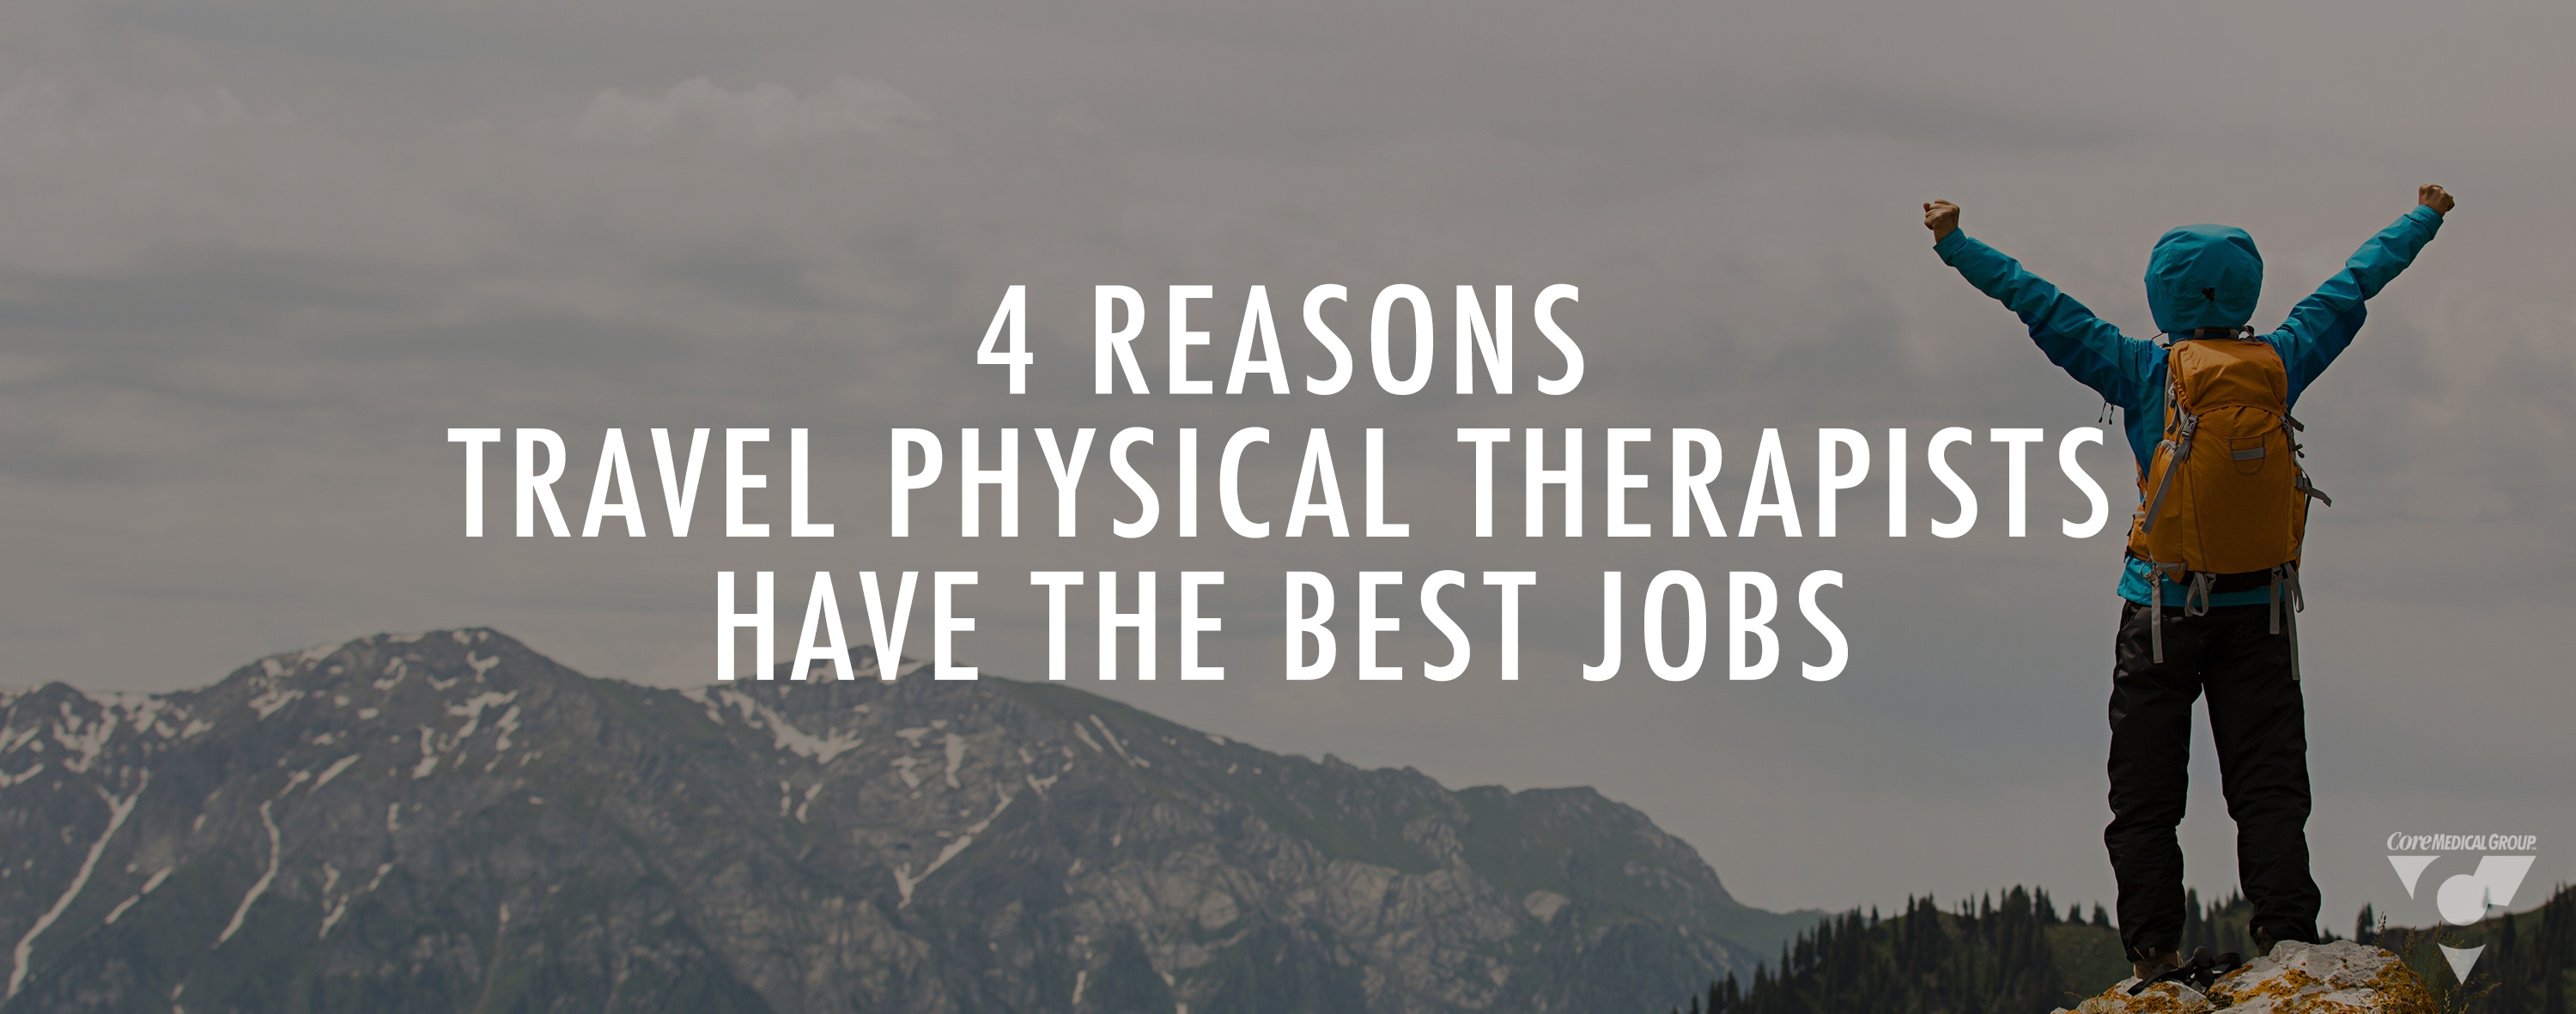 4 Reasons Traveling Physical Therapists have the Best Jobs